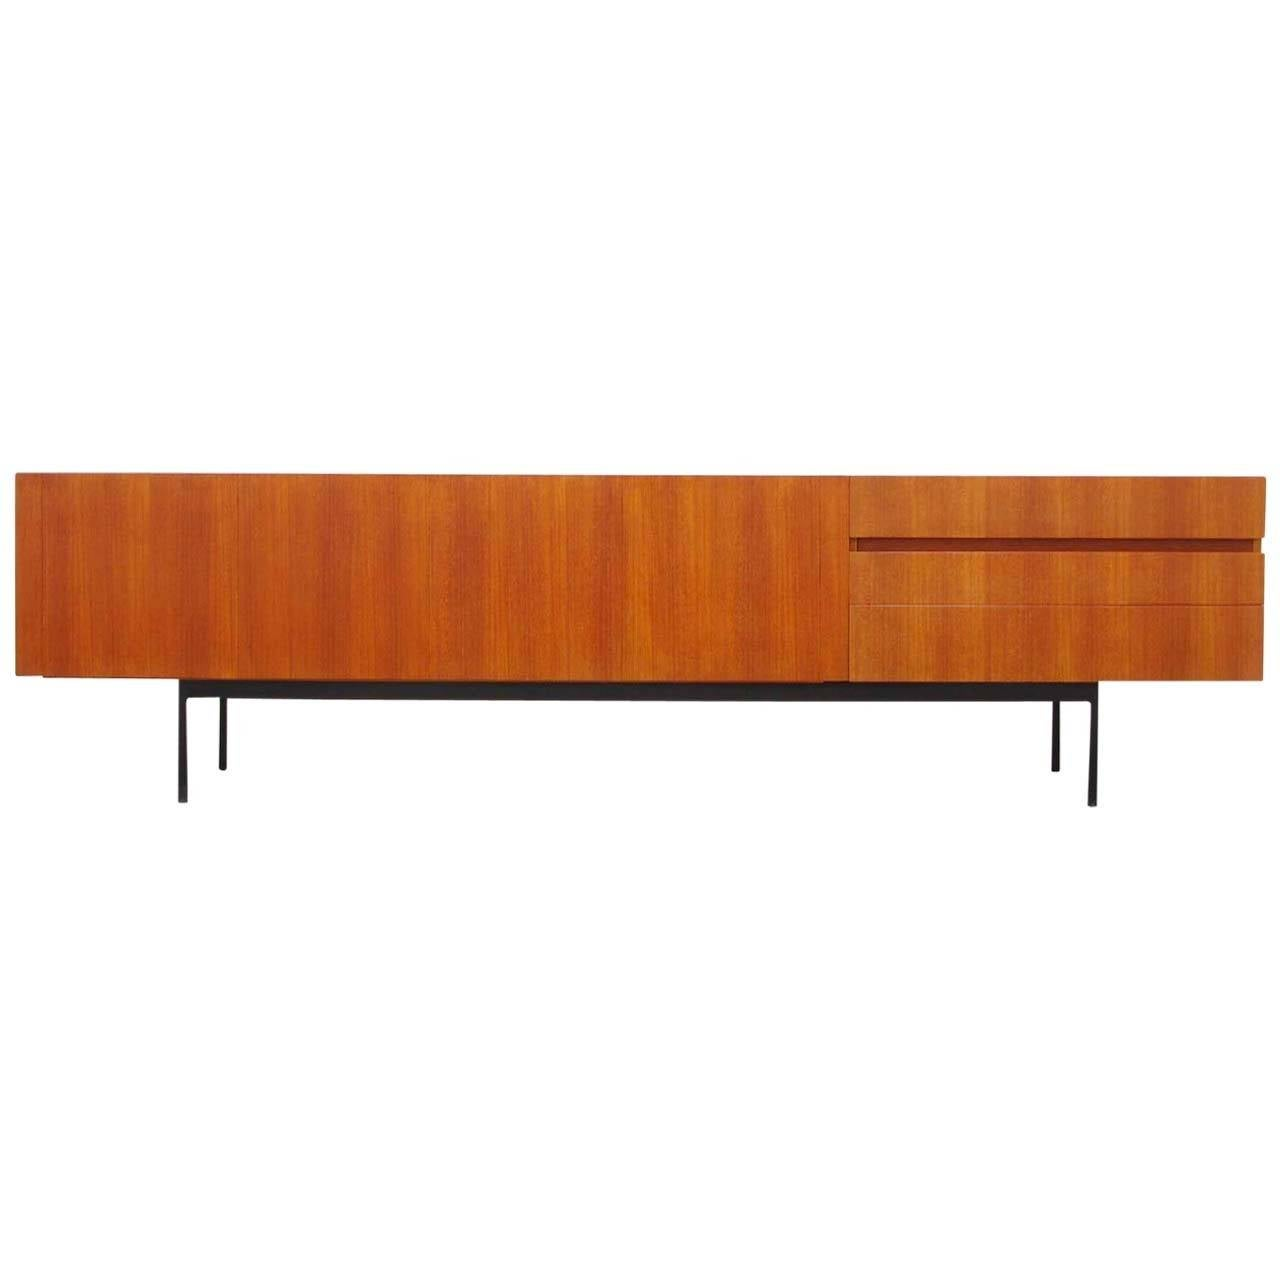 Teak Sideboard B41 by Dieter Waeckerlin for Behr Mid